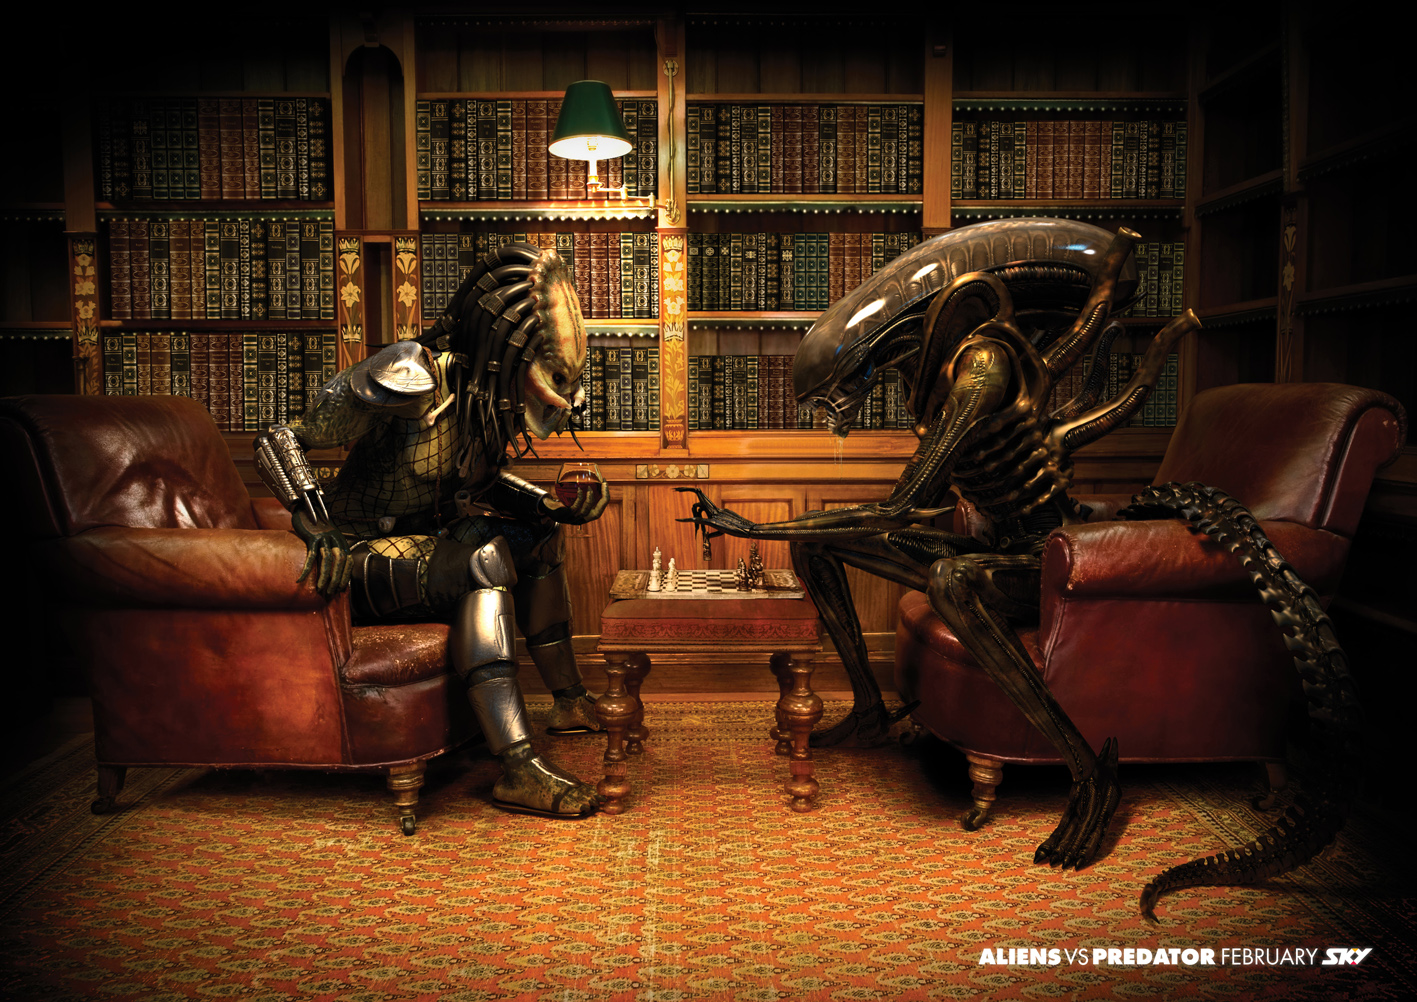 https://i0.wp.com/theinspirationroom.com/daily/print/2009/2/aliens_vs_predator_chess.jpg